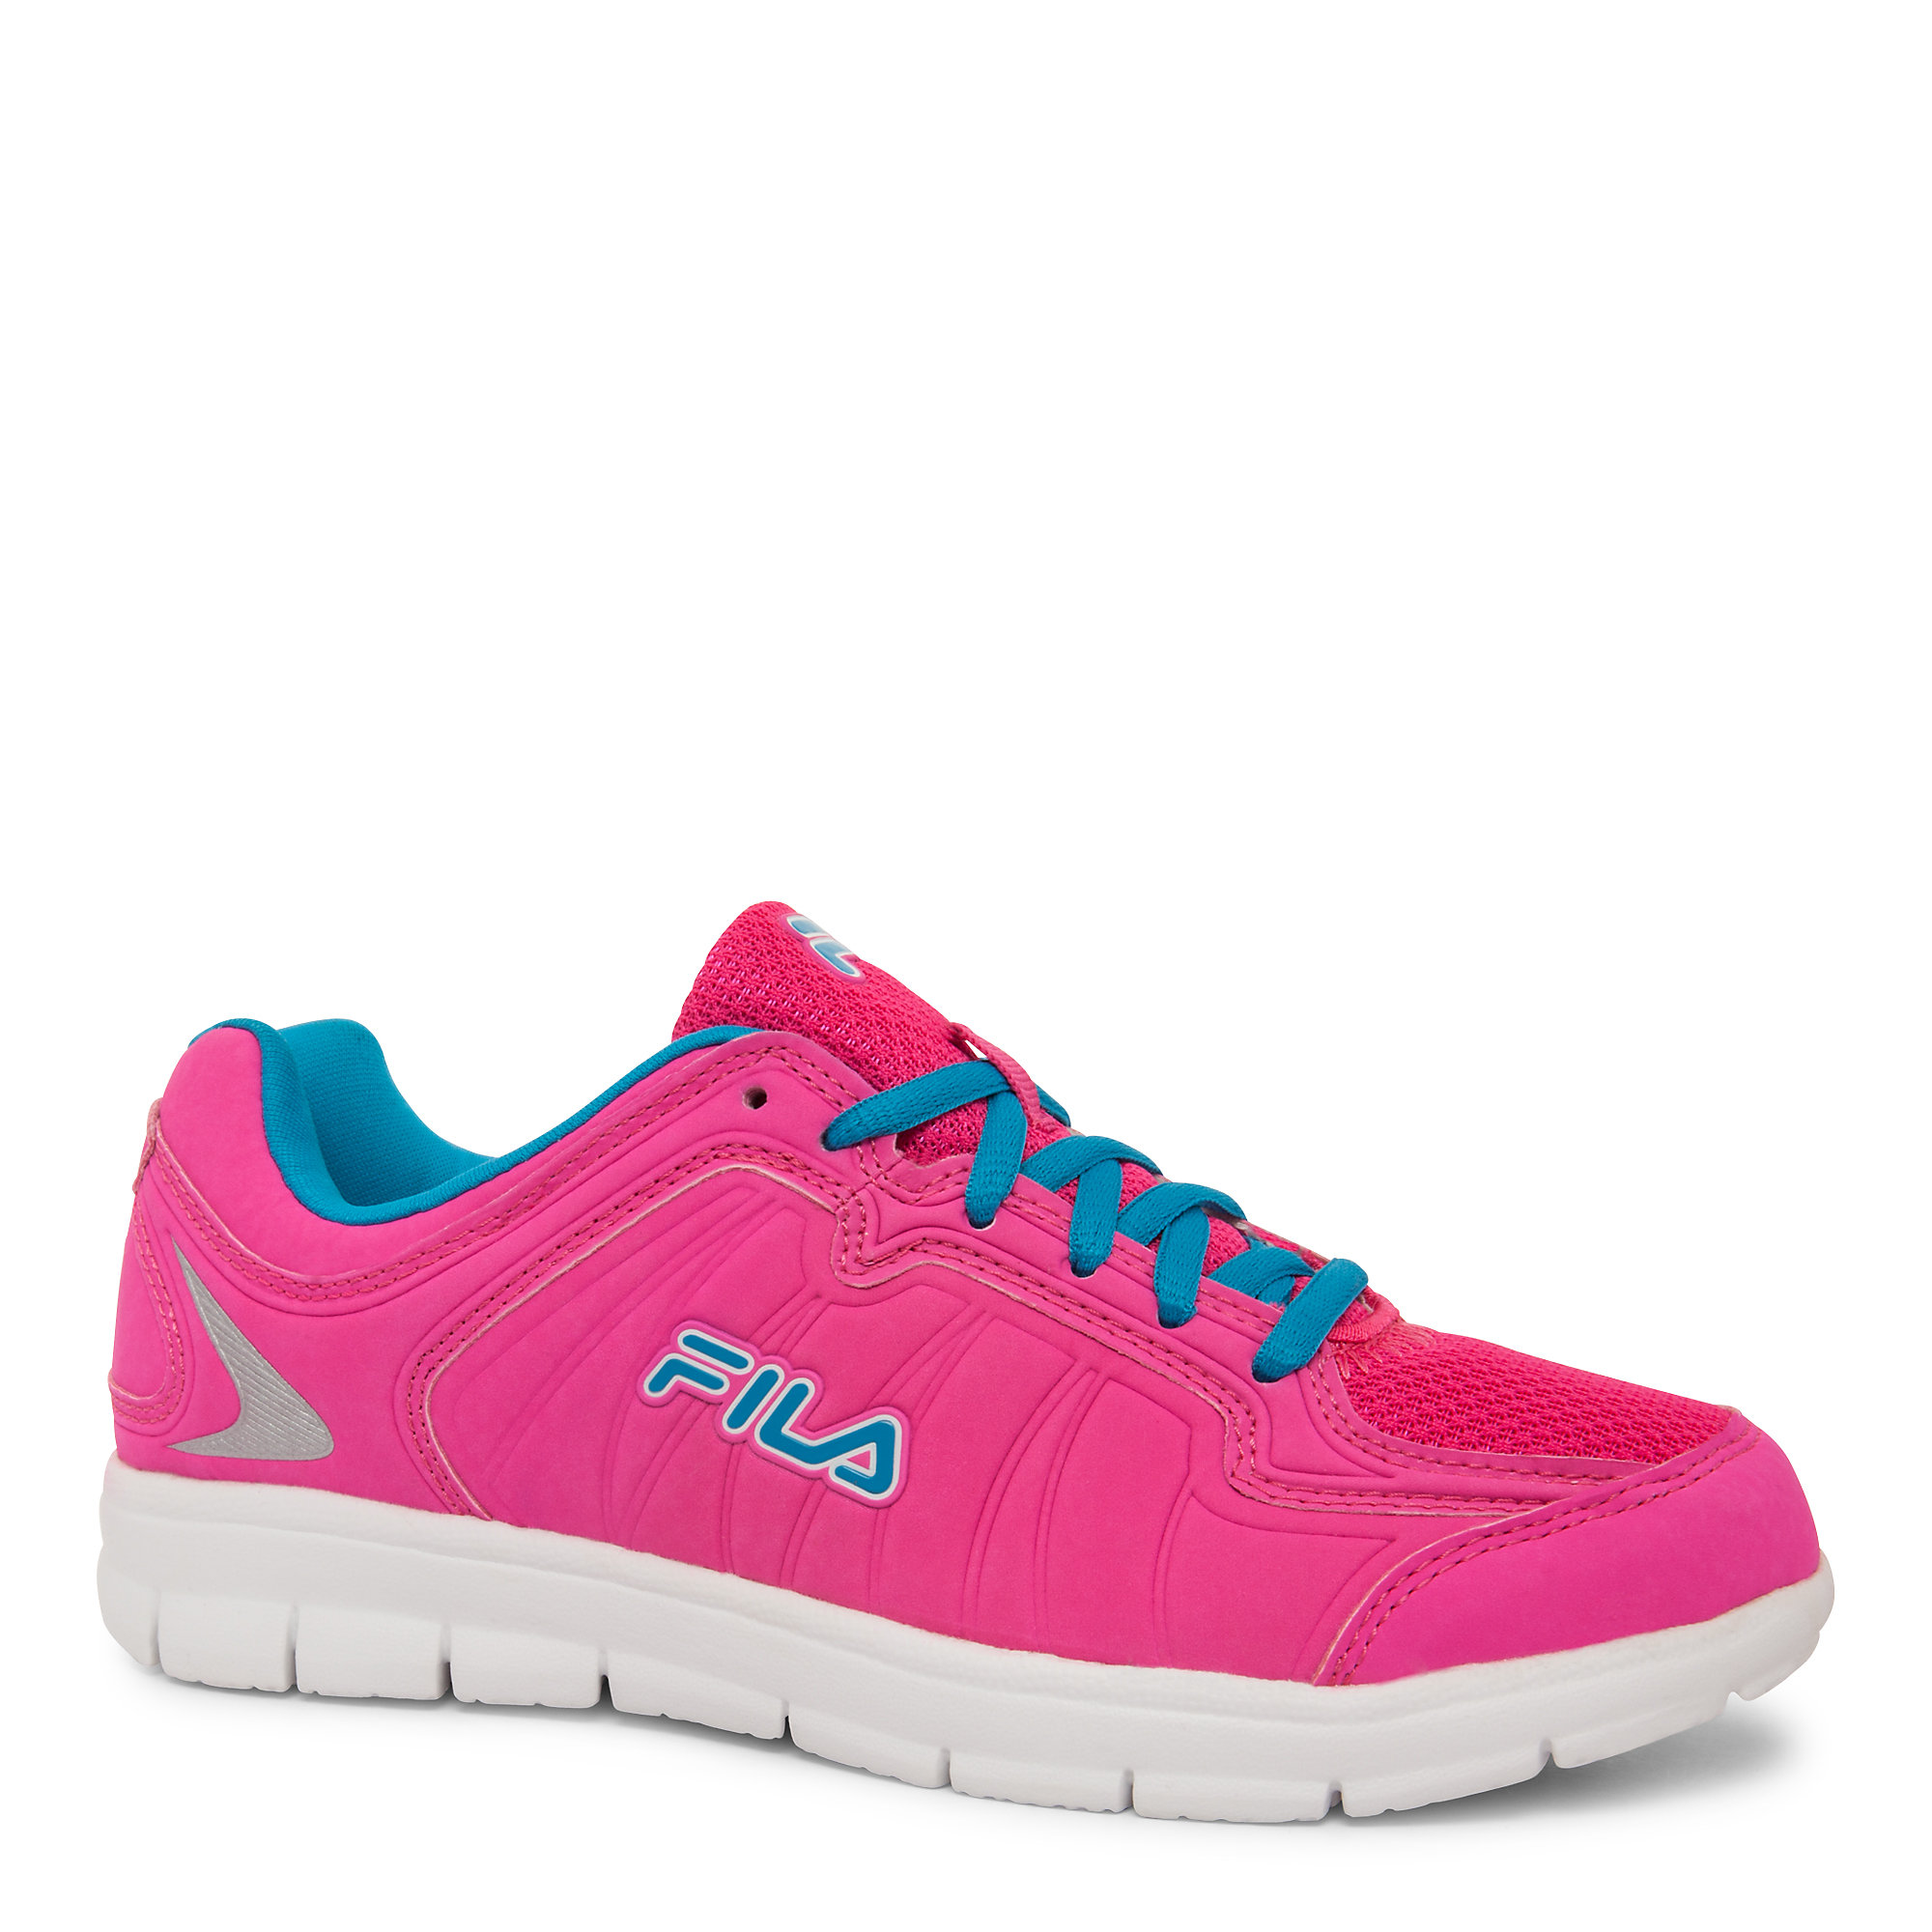 fila shoes for women images